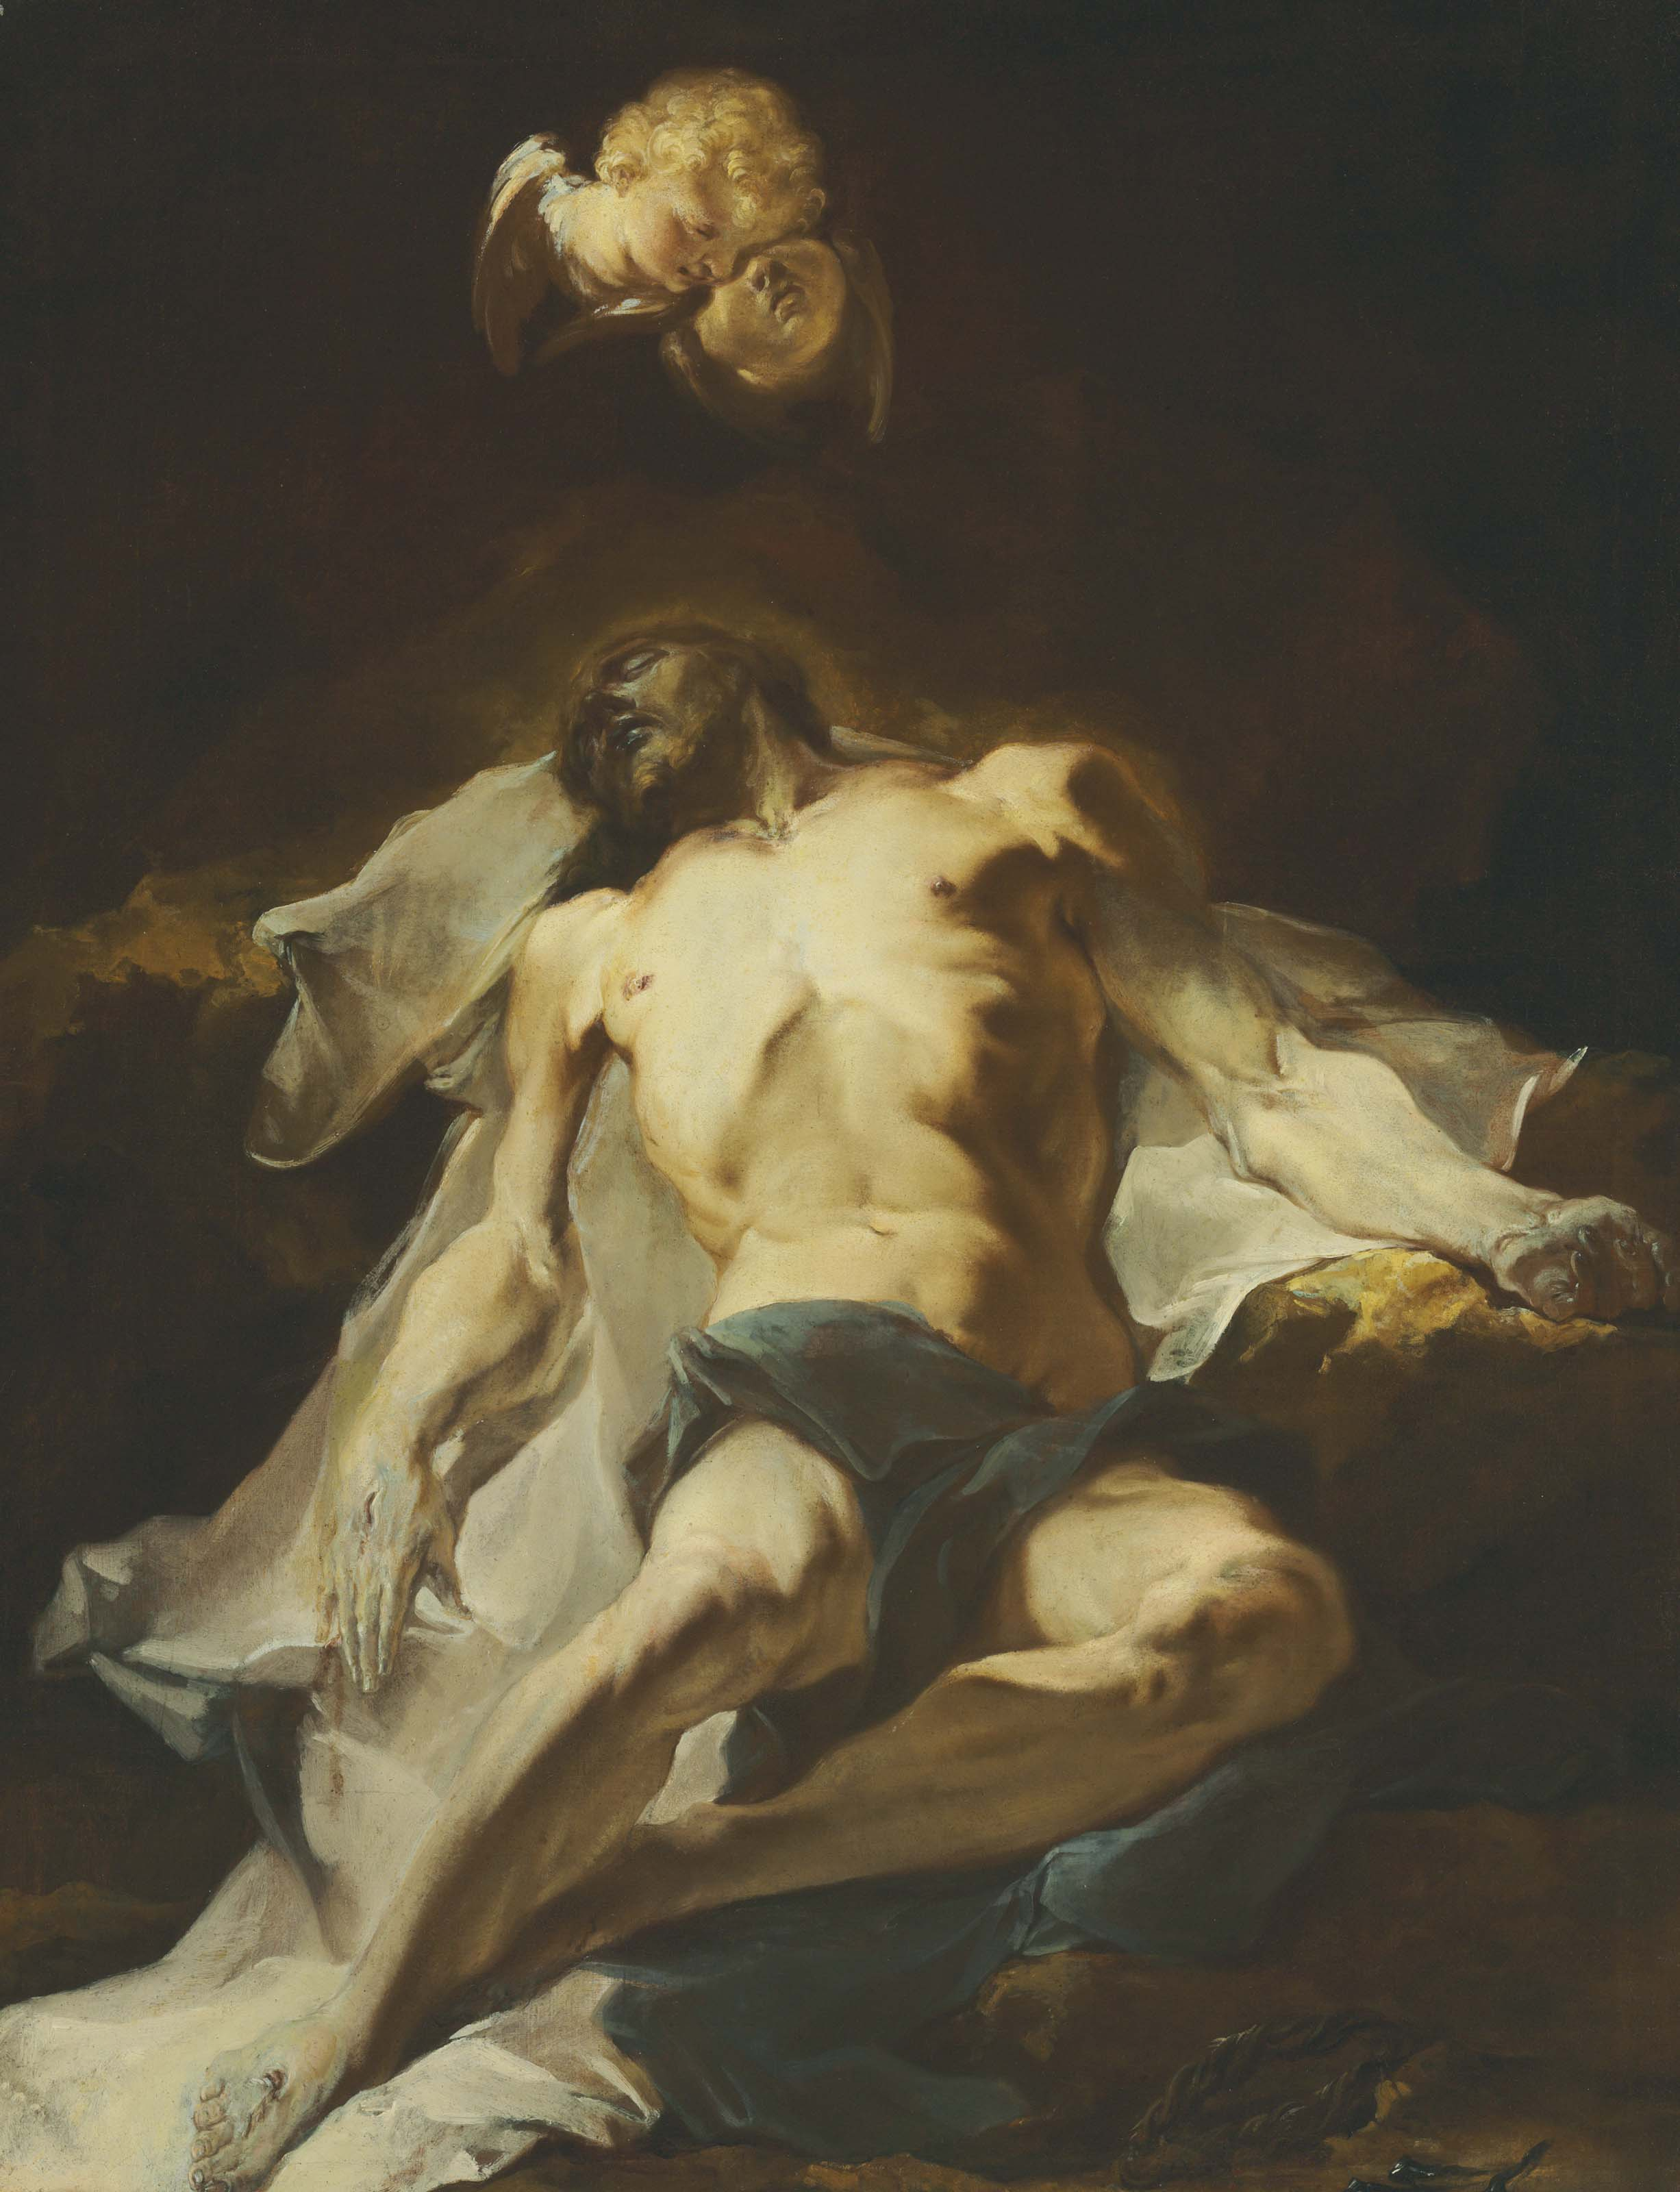 Christ mourned by seraphim